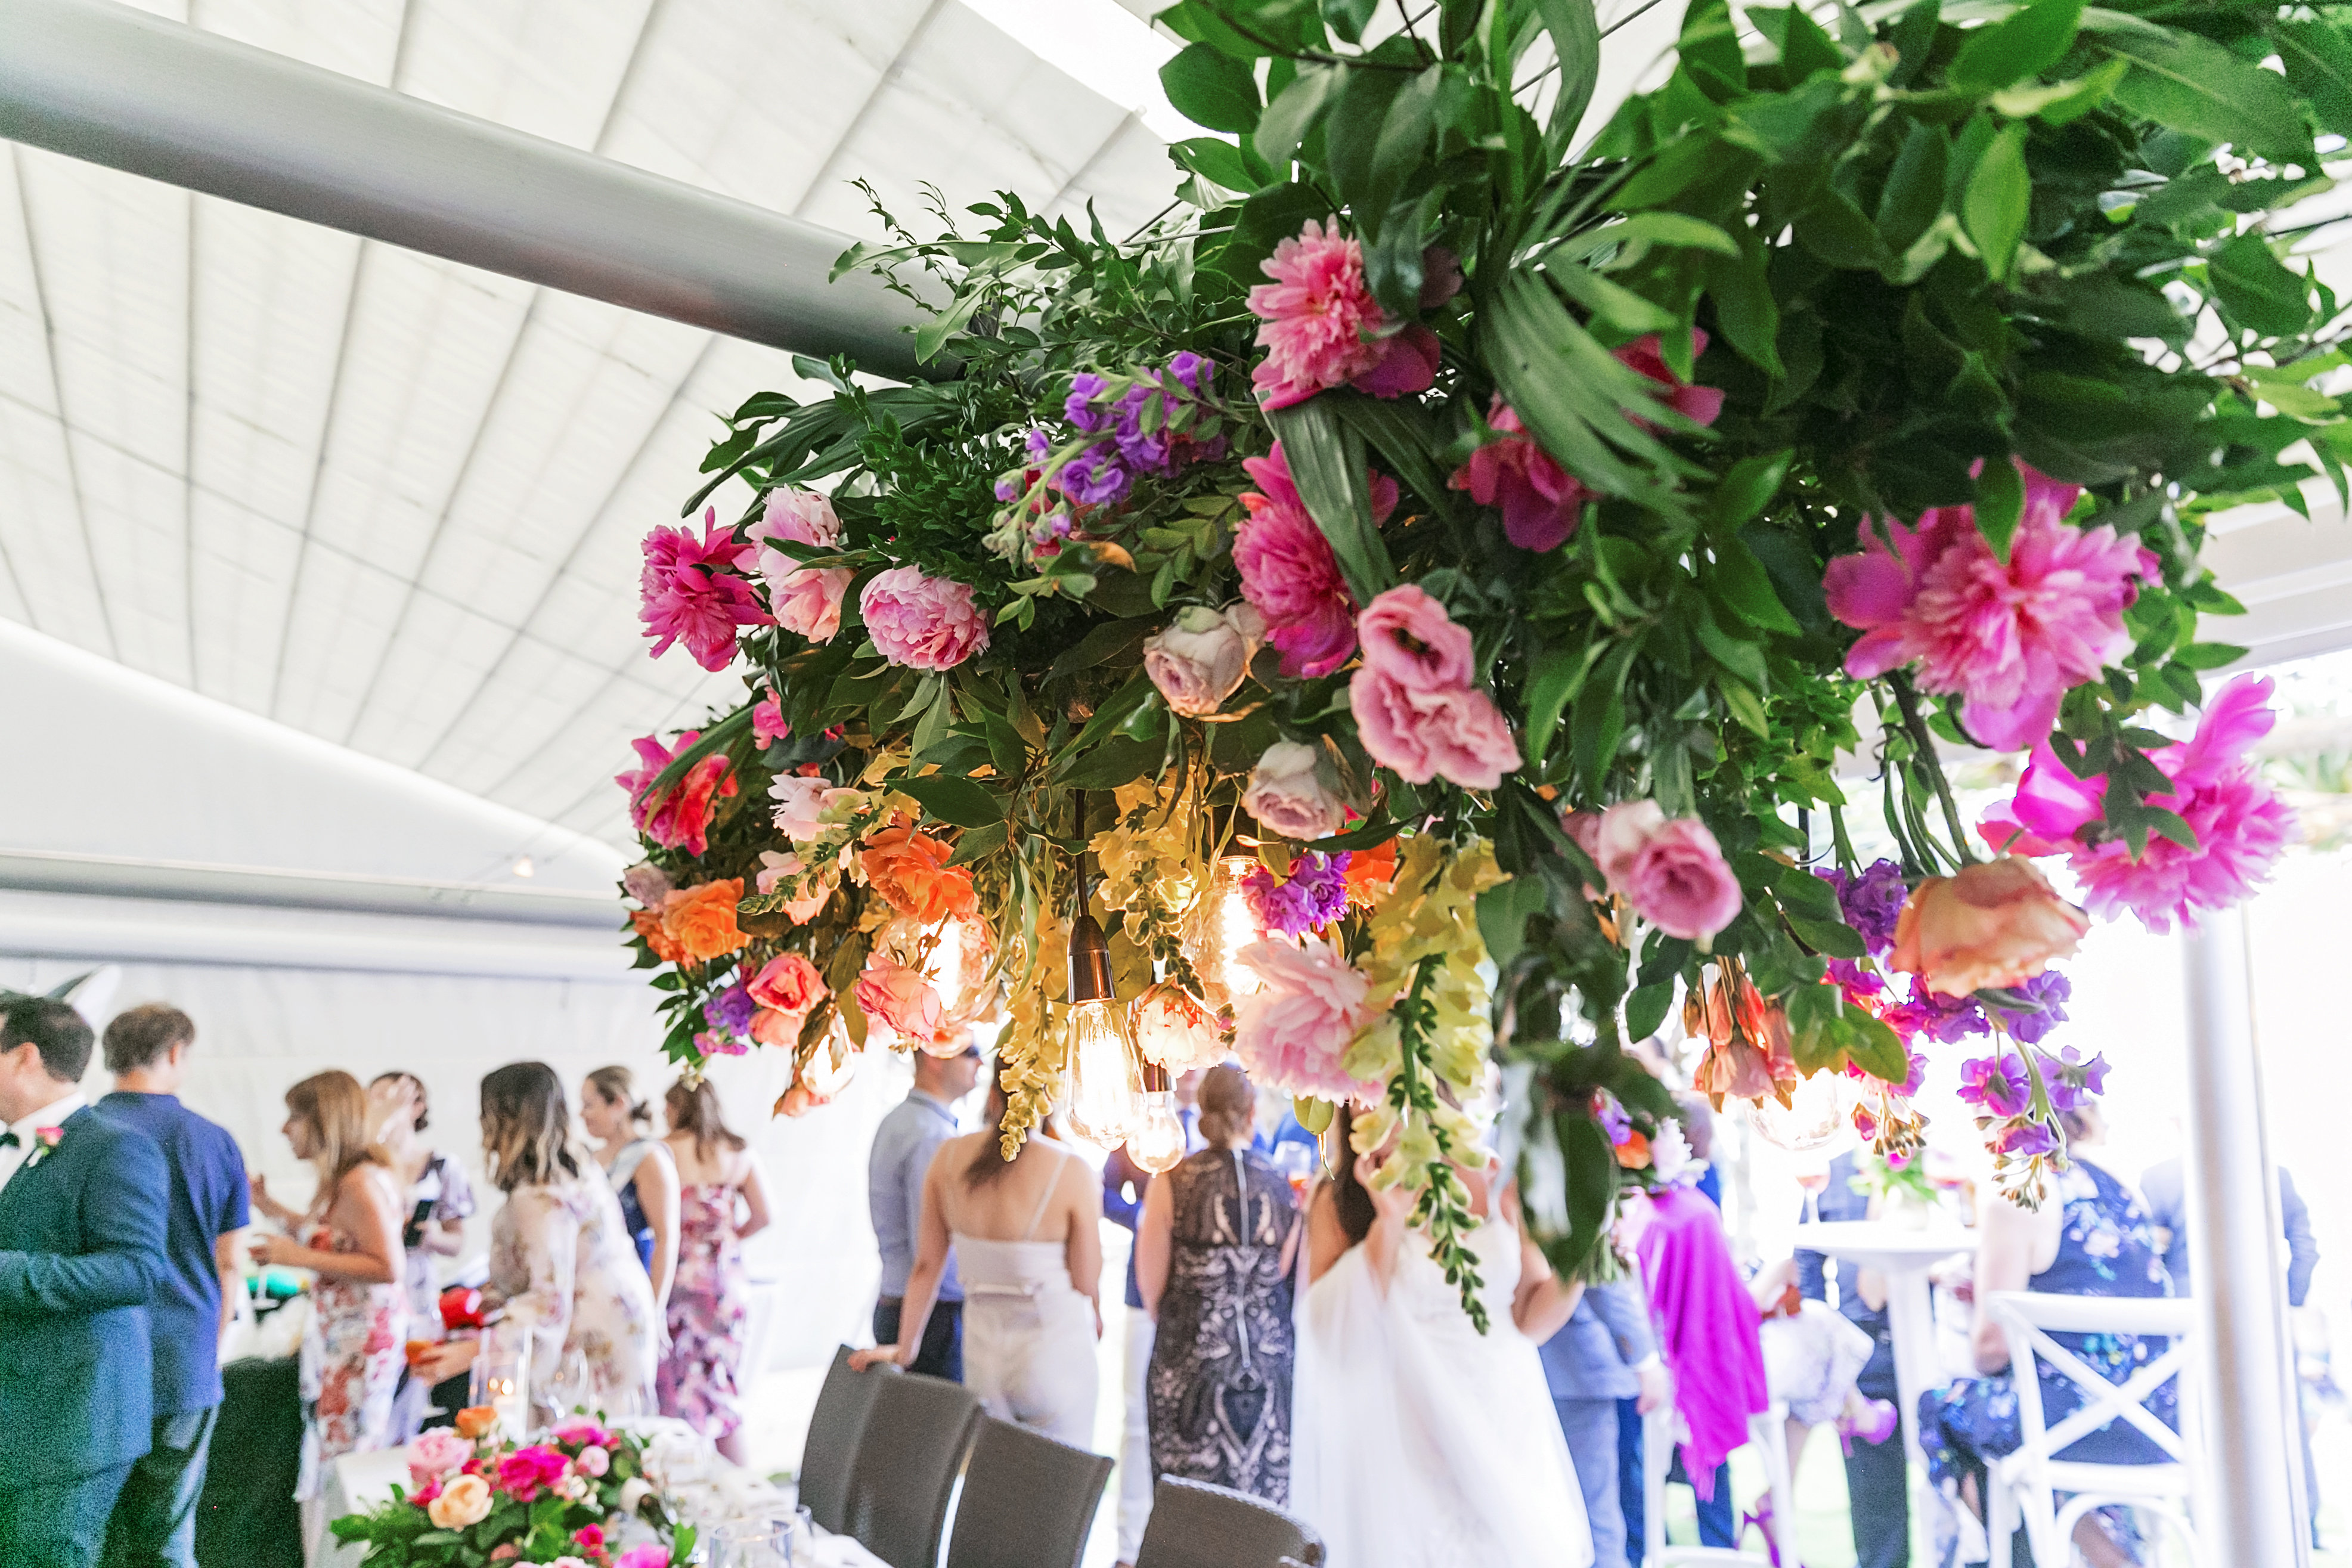 Noosa wedding featuring mordern bright floral hanging structure